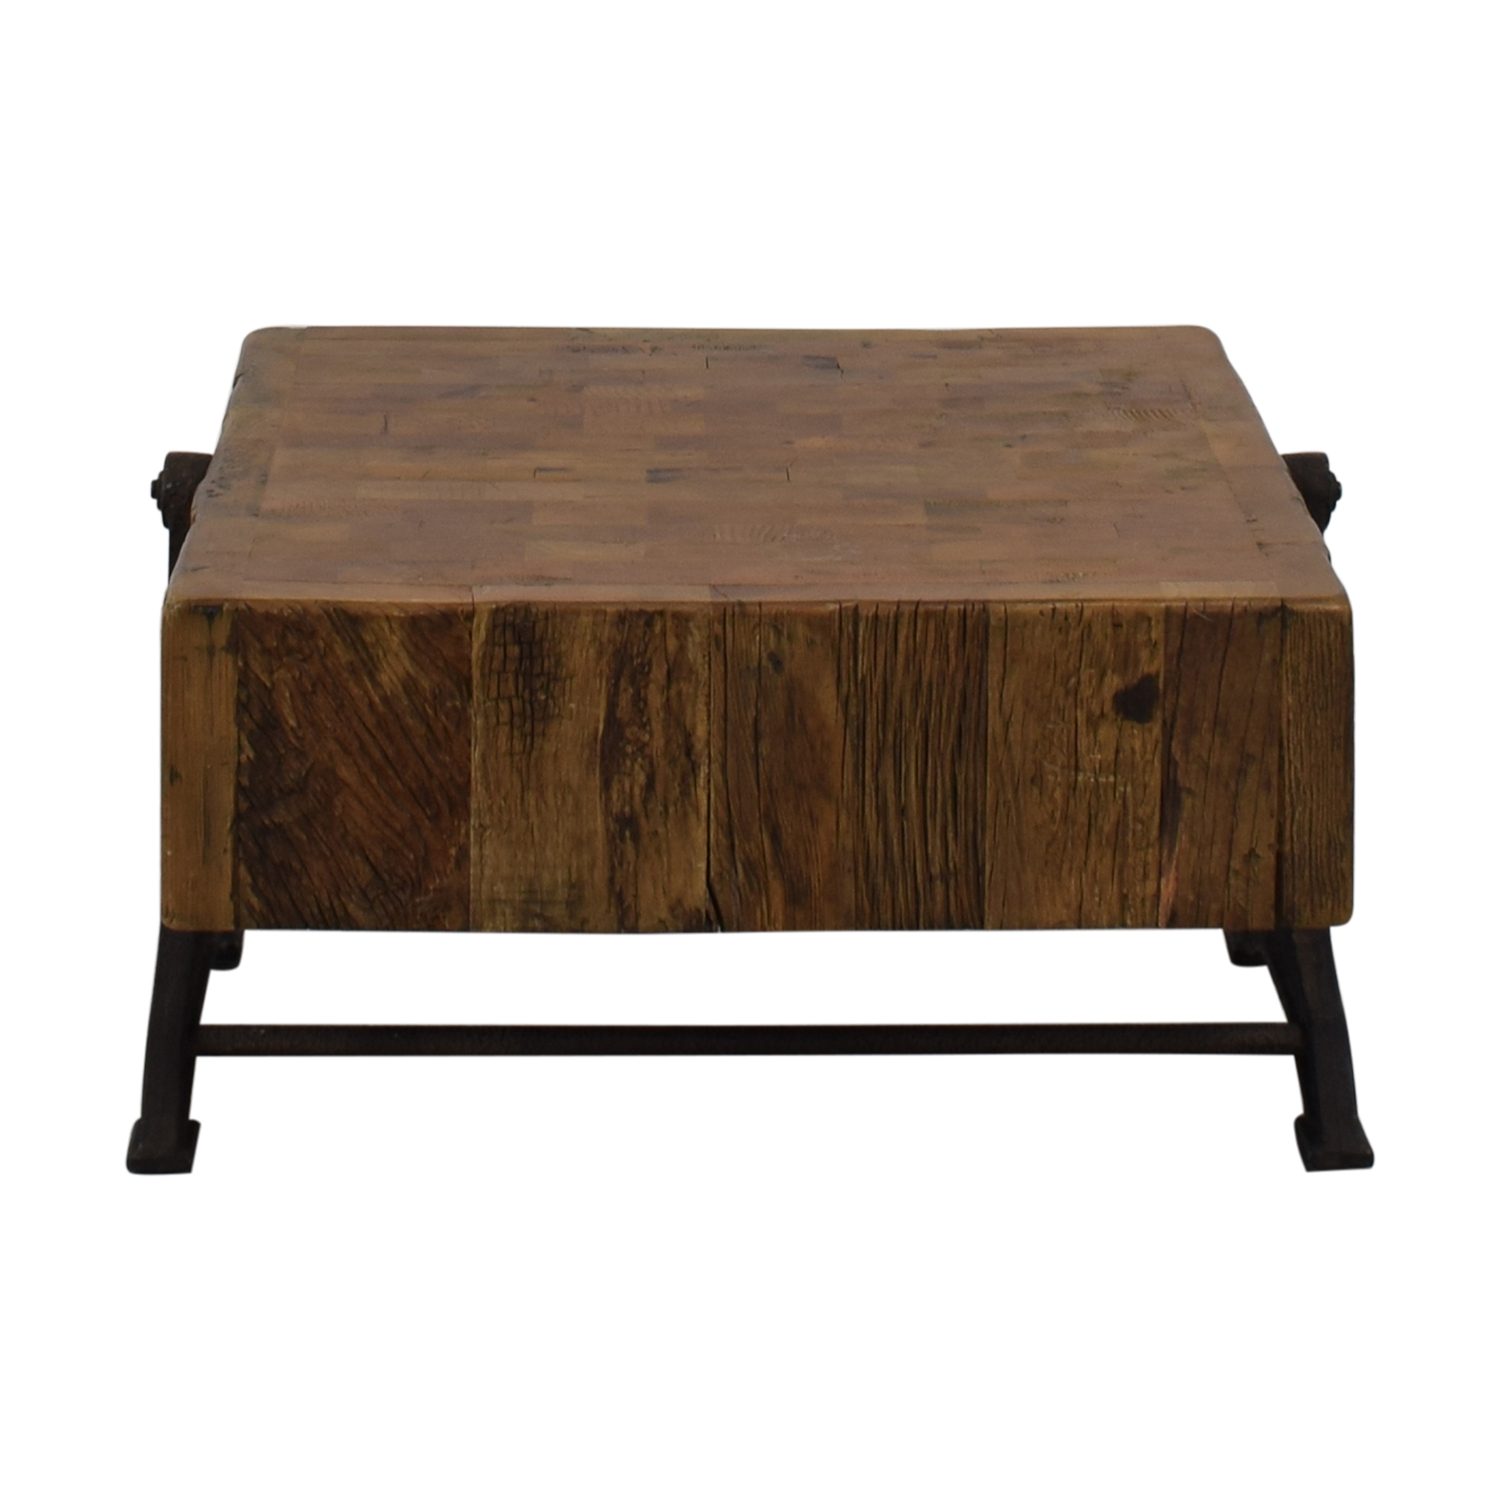 Restoration Hardware Reclaimed Russian Pine Industrial Coffee Table / Coffee Tables